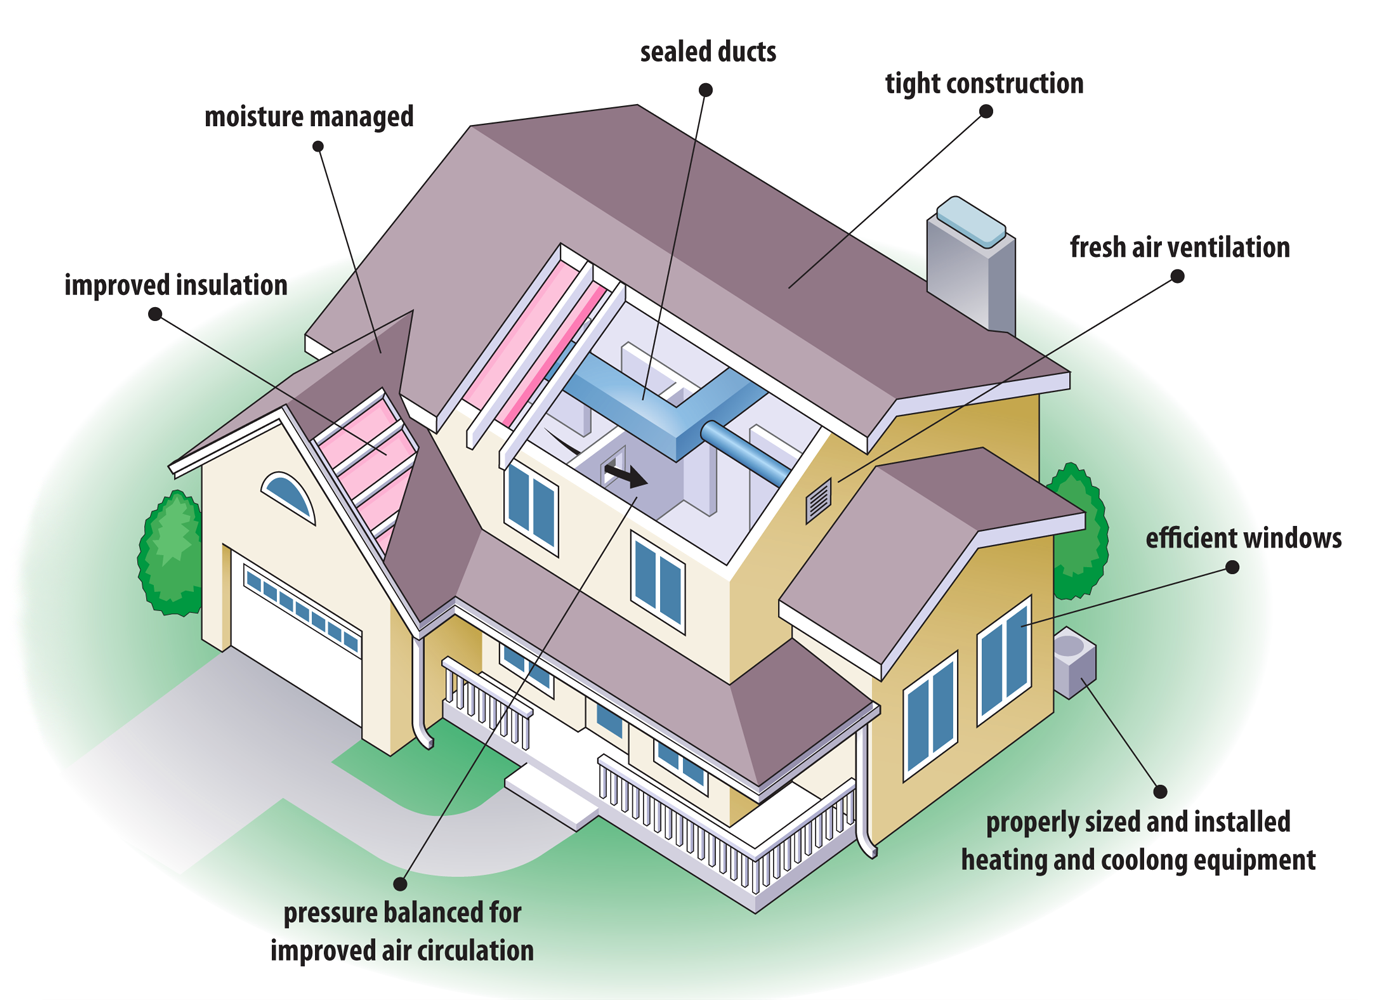 energy efficient house plans diagram showing the various aspects of